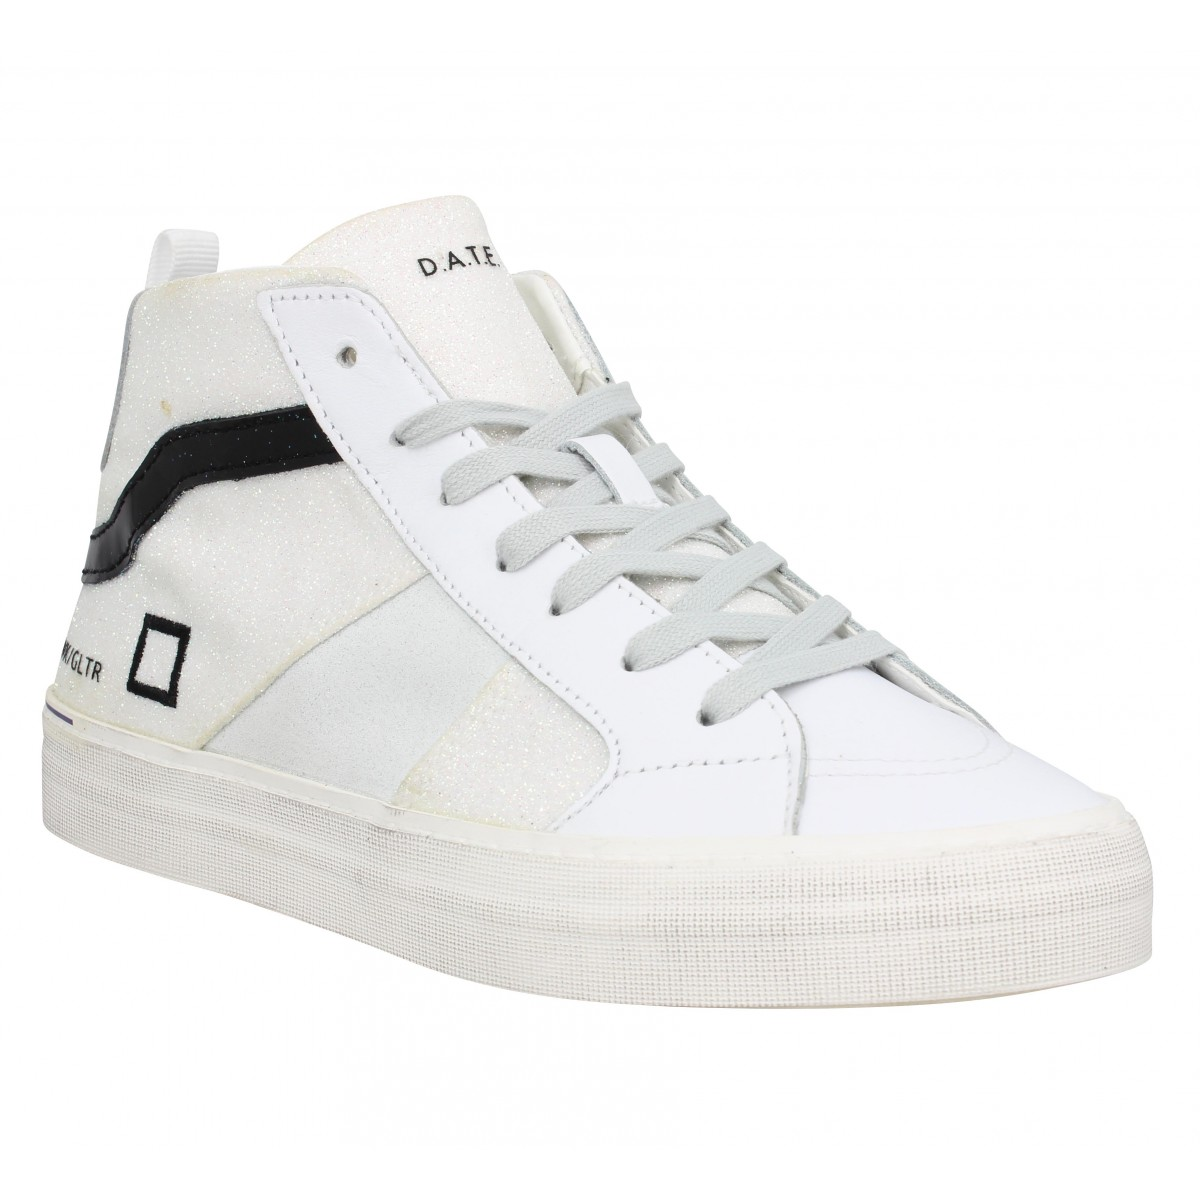 D.A.T.E Marque Date Sneakers Hawk...